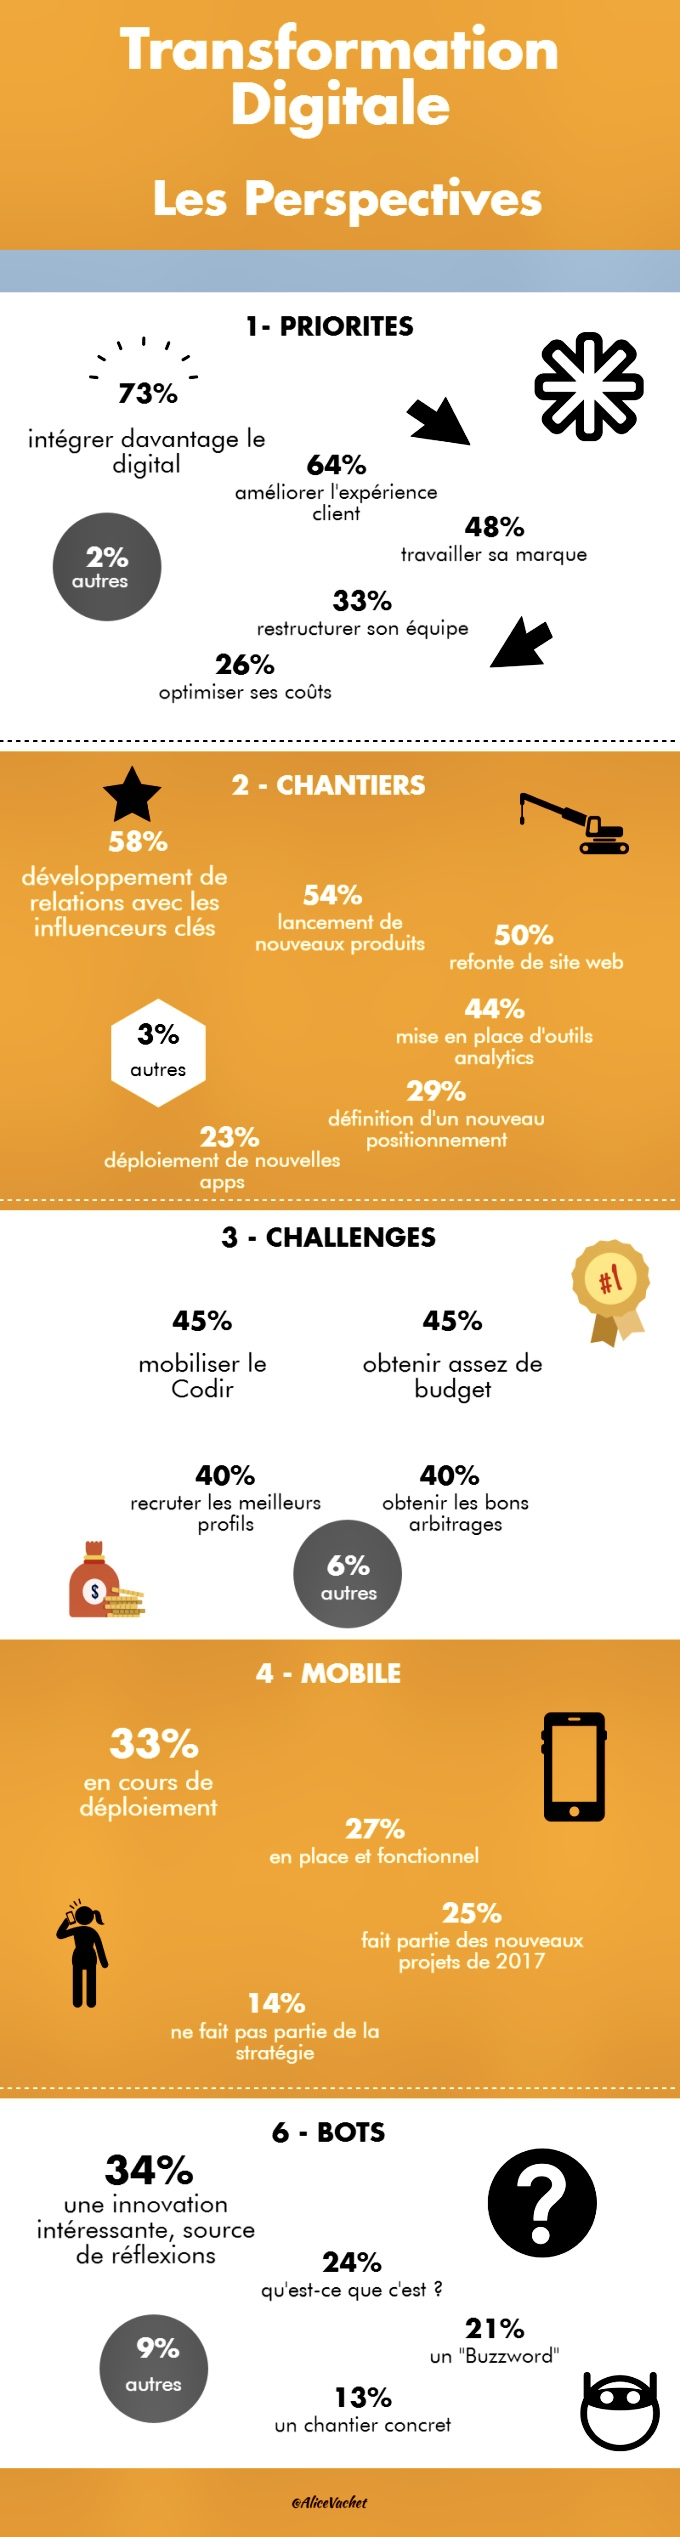 [Infographie] Transformation Digitale : Les Perspectives 🧮